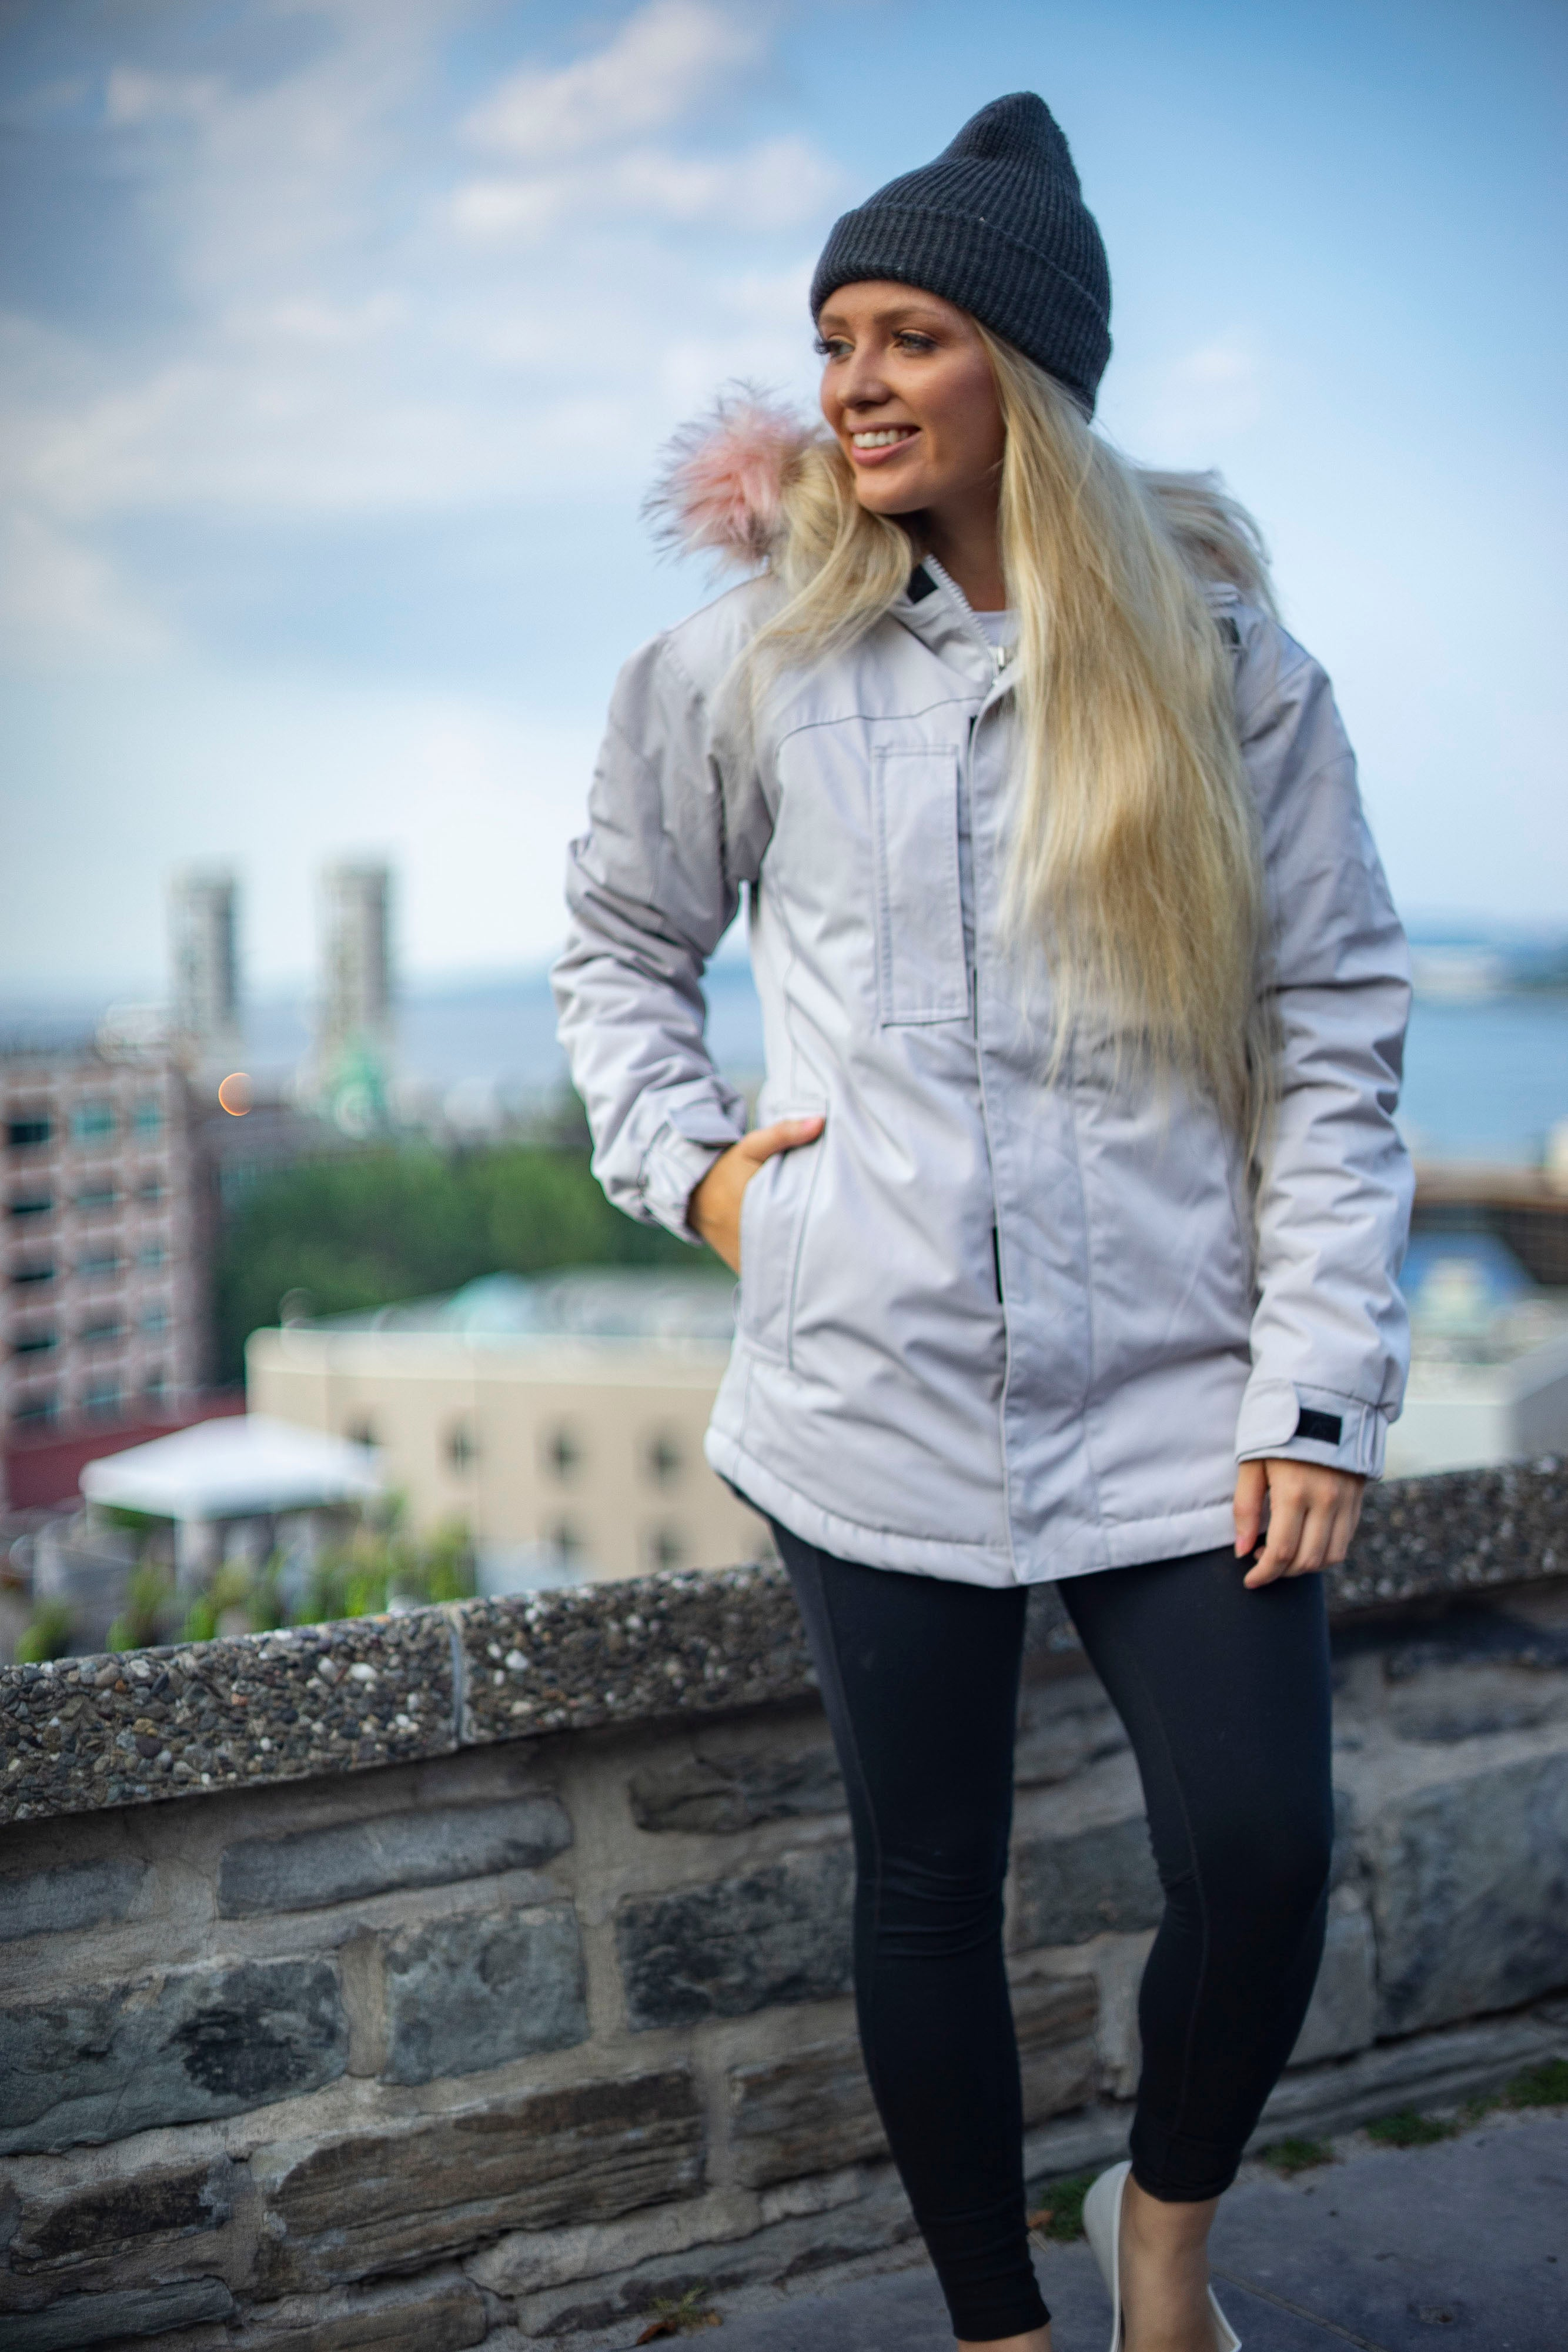 UPNORTH JACKET - SOFT GREY   IF00166, Positive Group, UPNORTH JACKET - SOFT GREY   IF00166